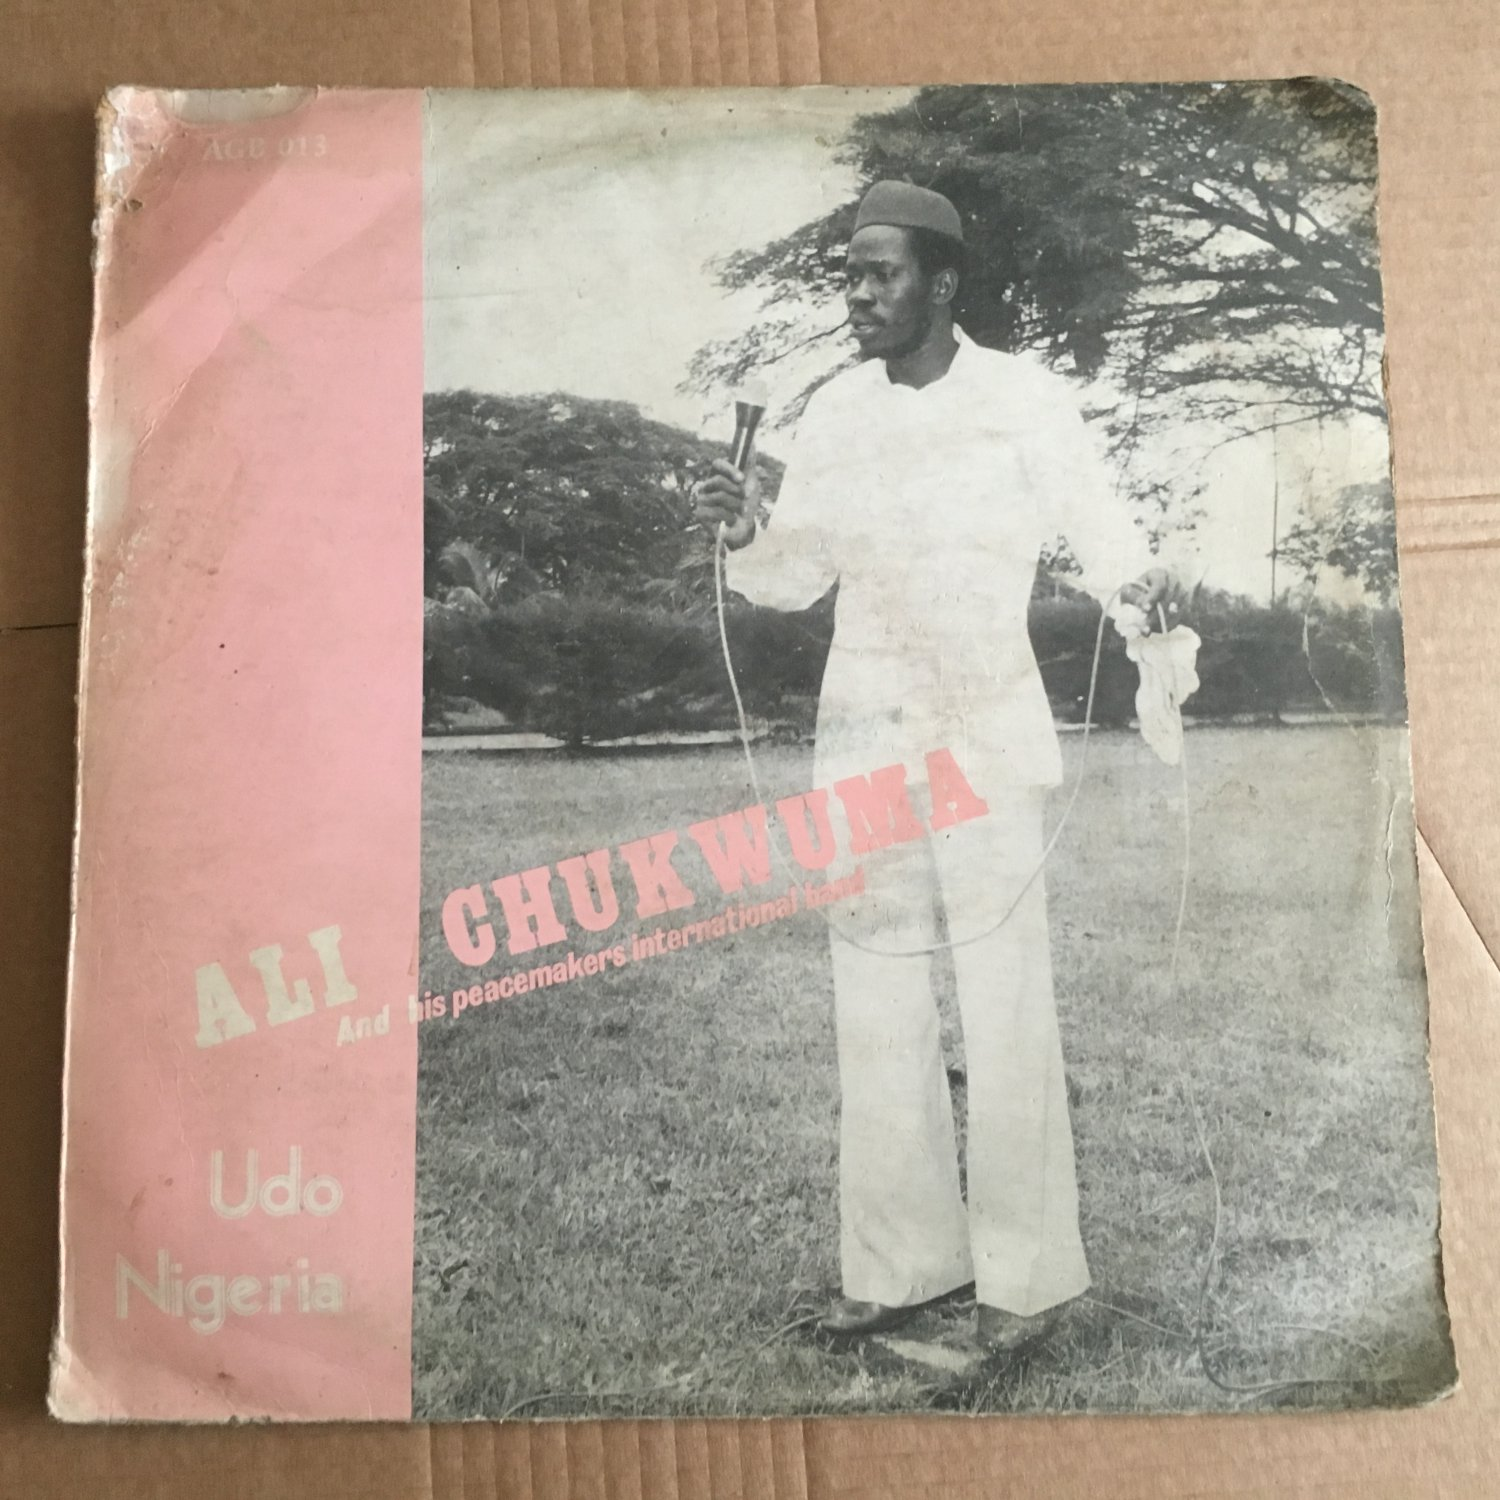 ALI CHUKWUMA & HIS PEACEMAKERS INT. BAND LP Udo NIGERIA DEEP HIGHLIFE mp3 LISTEN